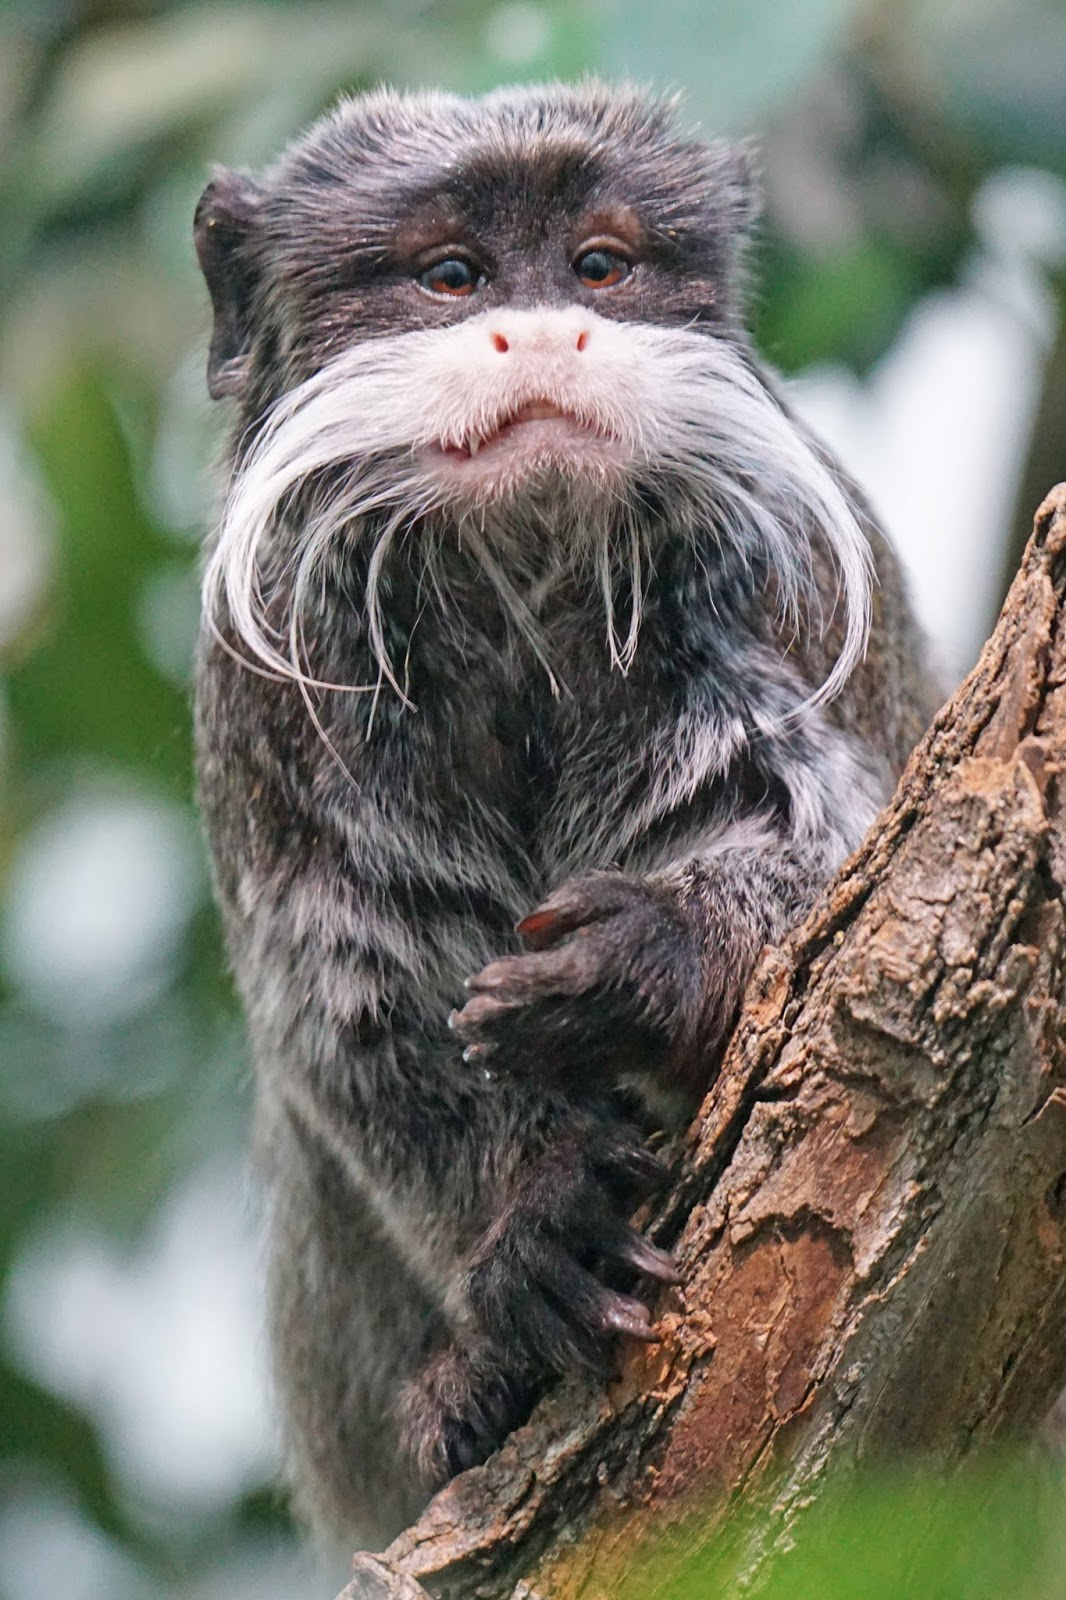 Funny picture of the emperor tamarin.